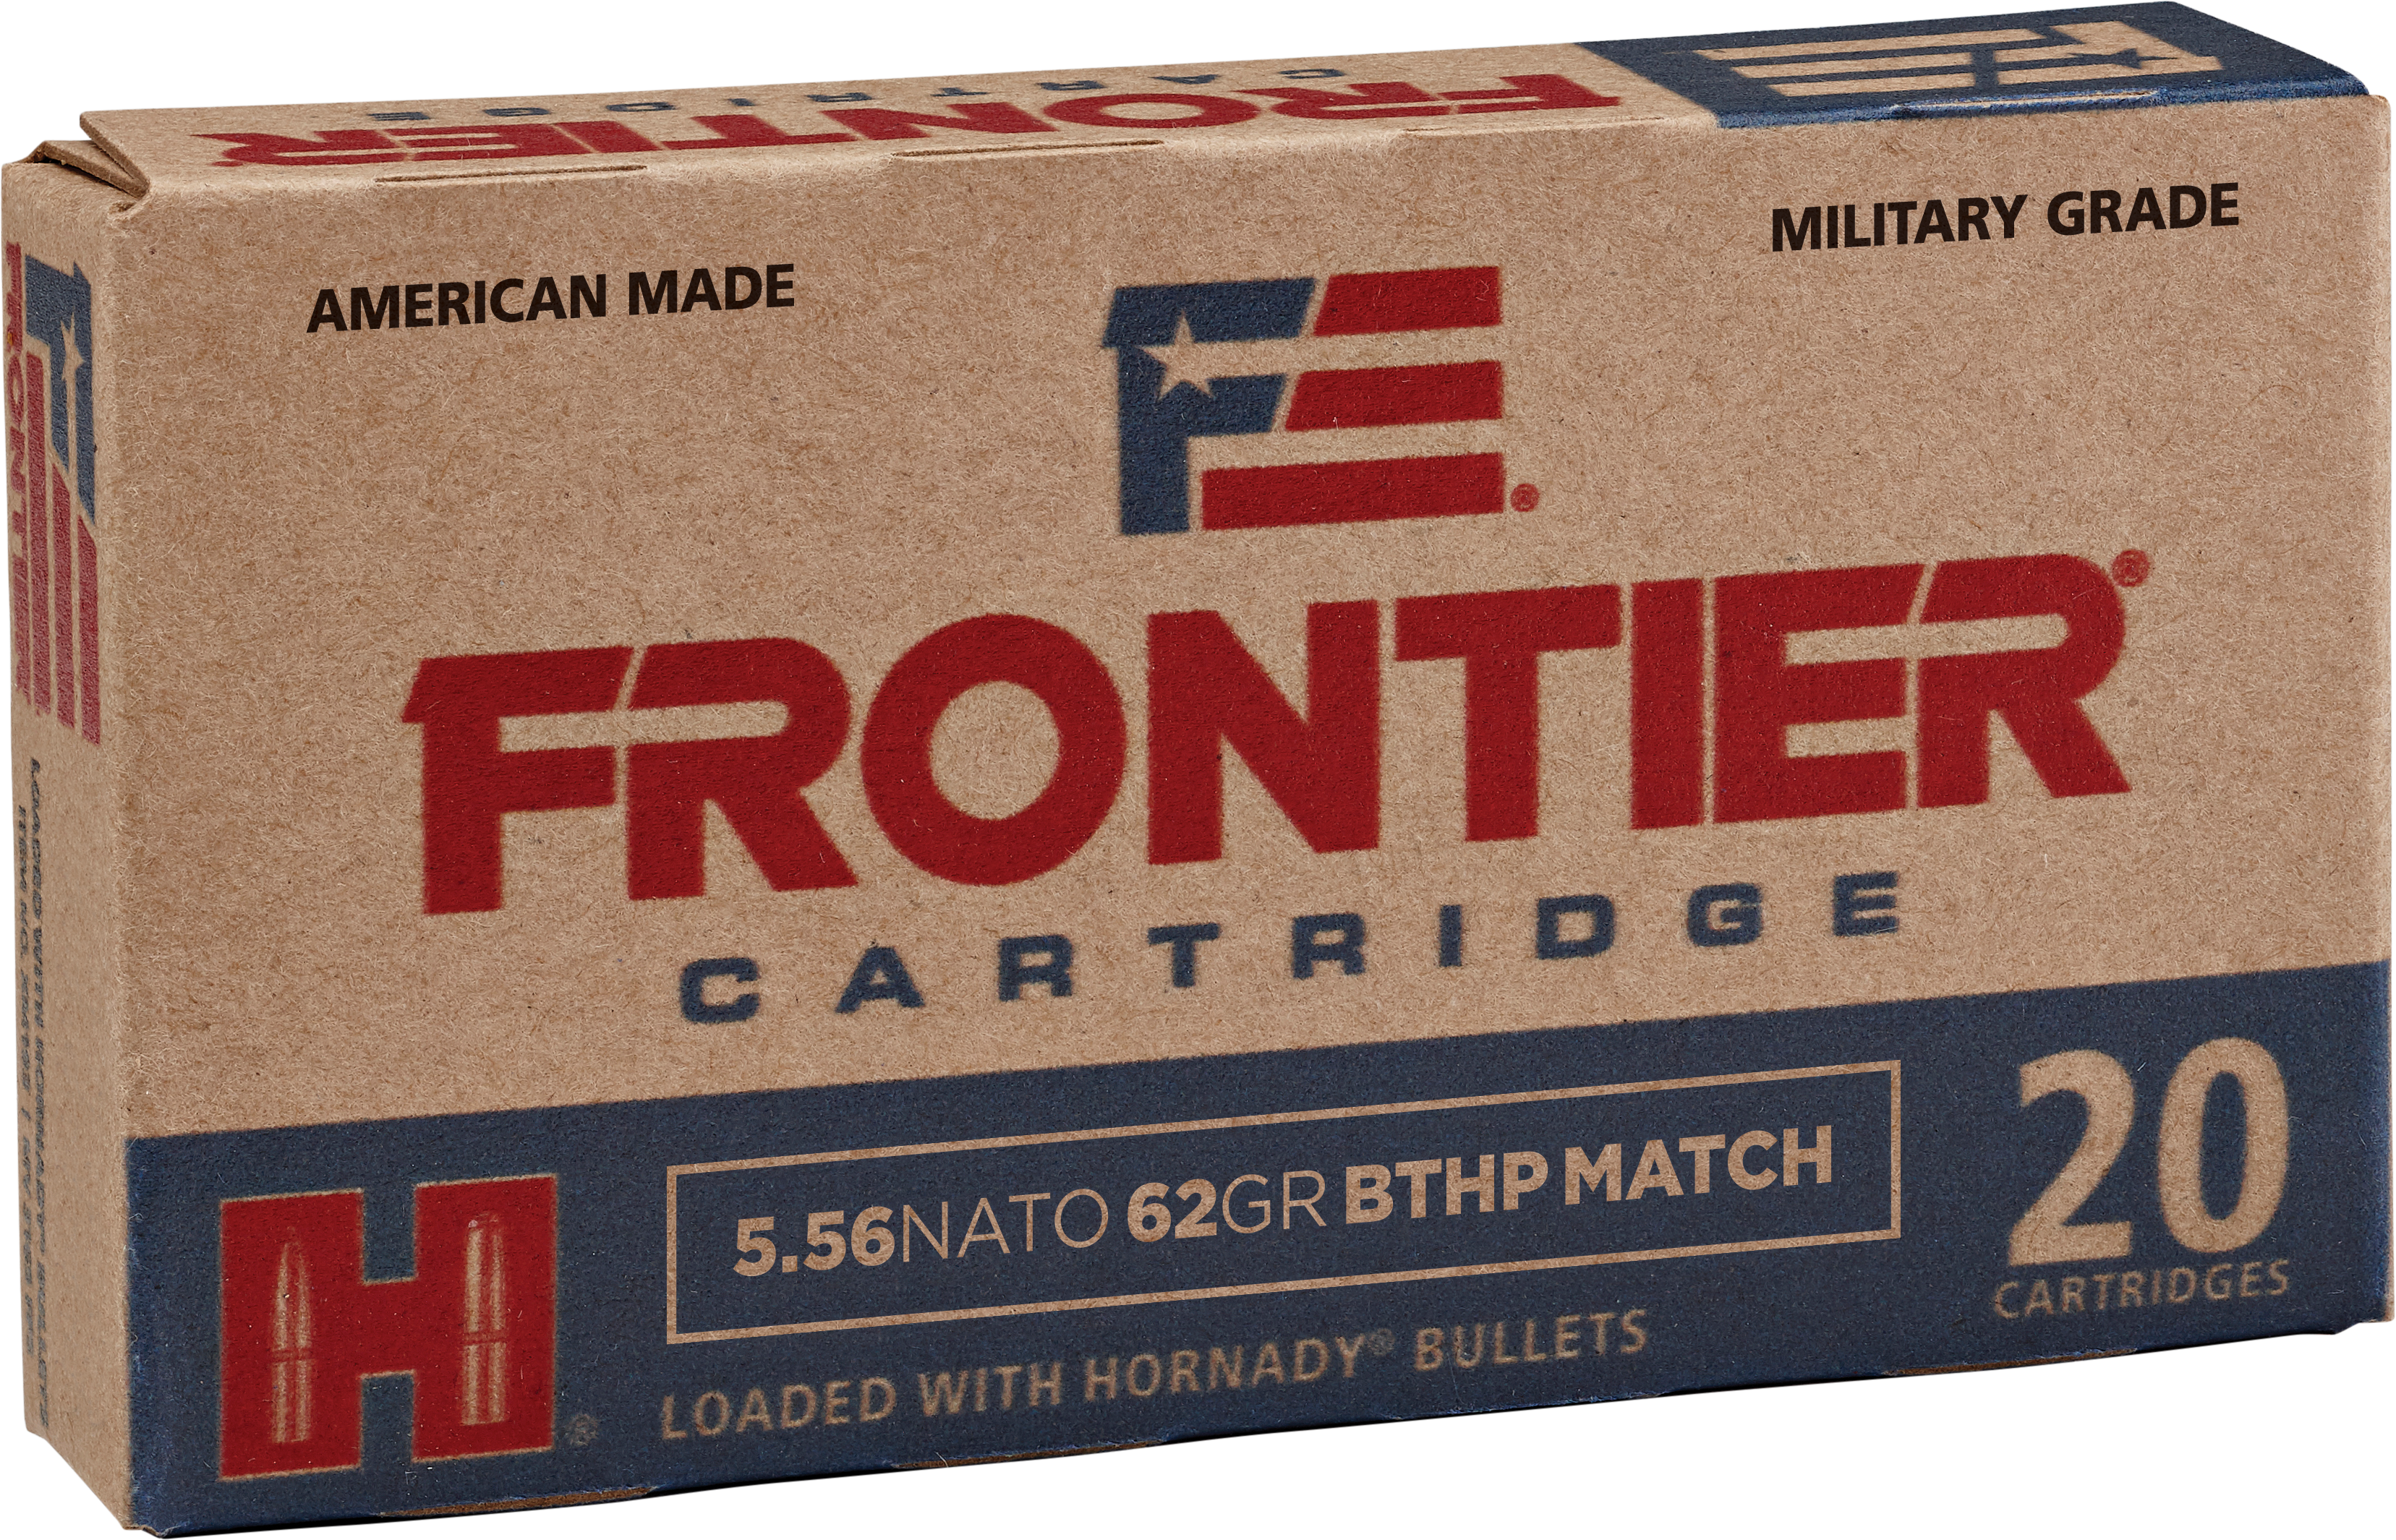 Frontier Cartridge Military Grade Ammunition 5.56x45mm NATO 62GR Hornady Hollow Point Boat Tail Per 20